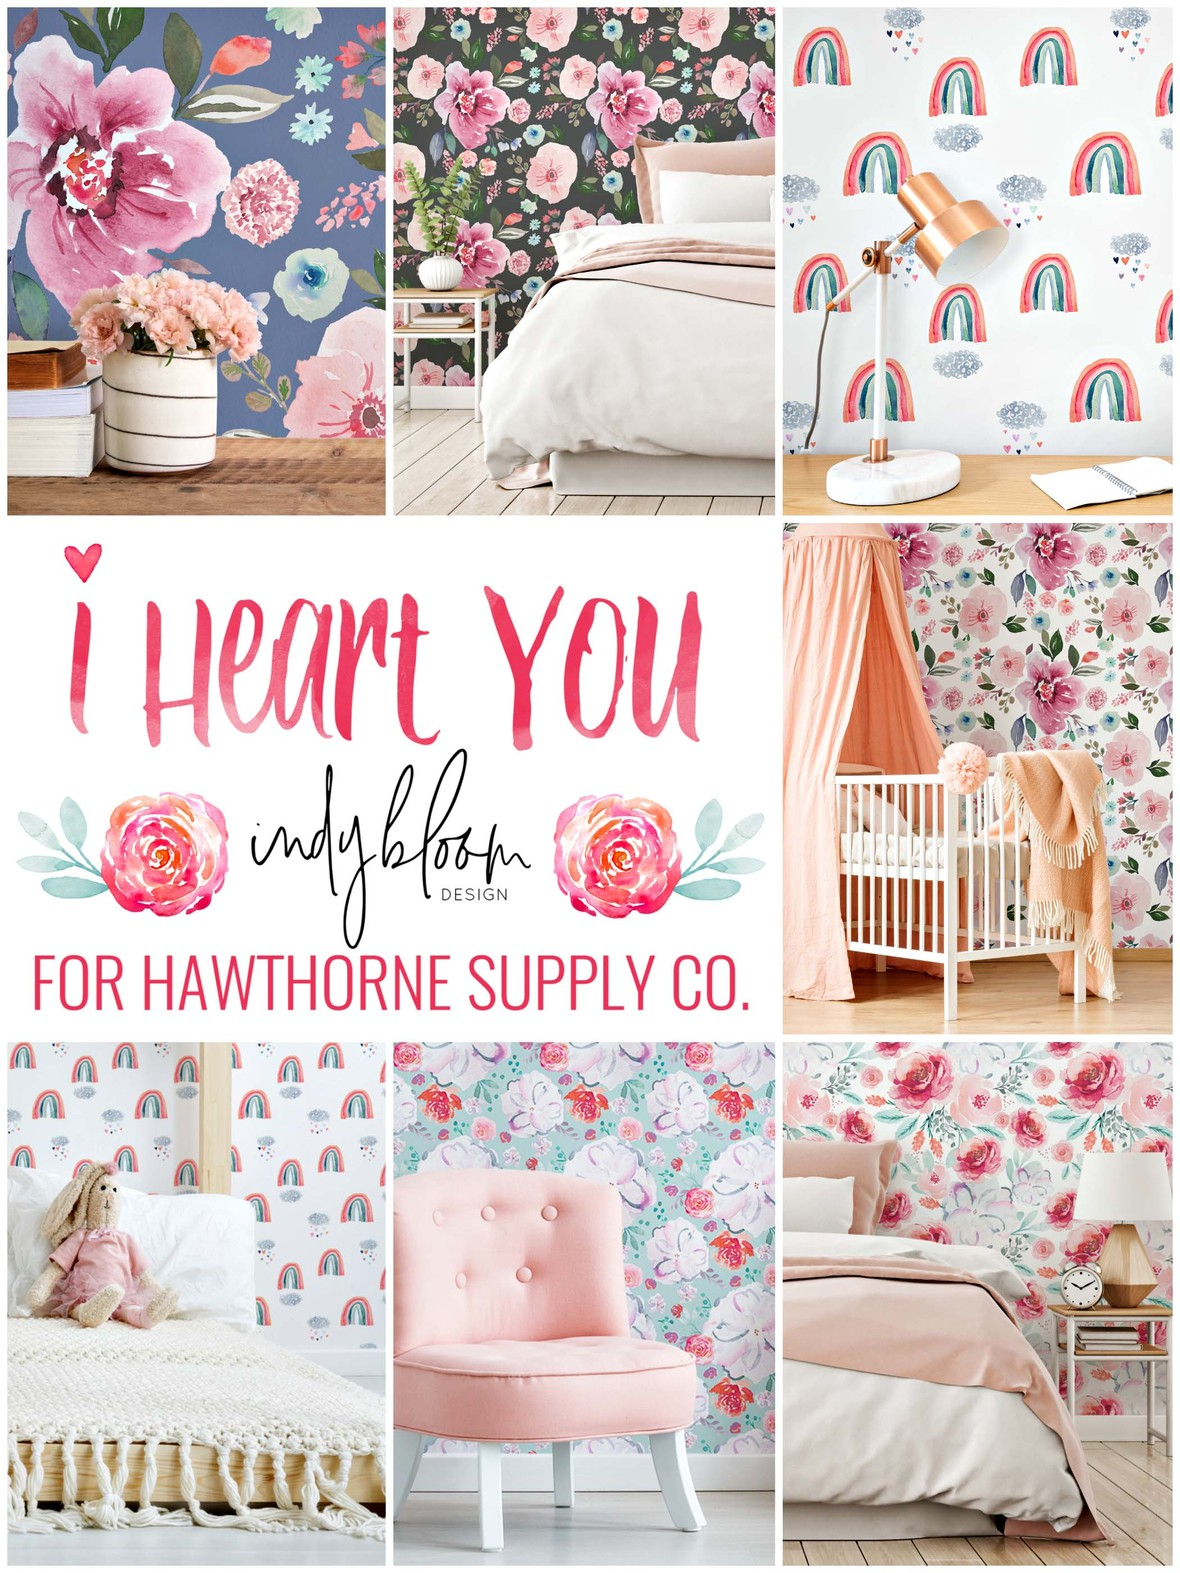 Indy Bloom Falling For You Wallpaper at Hawthorne Supply Co